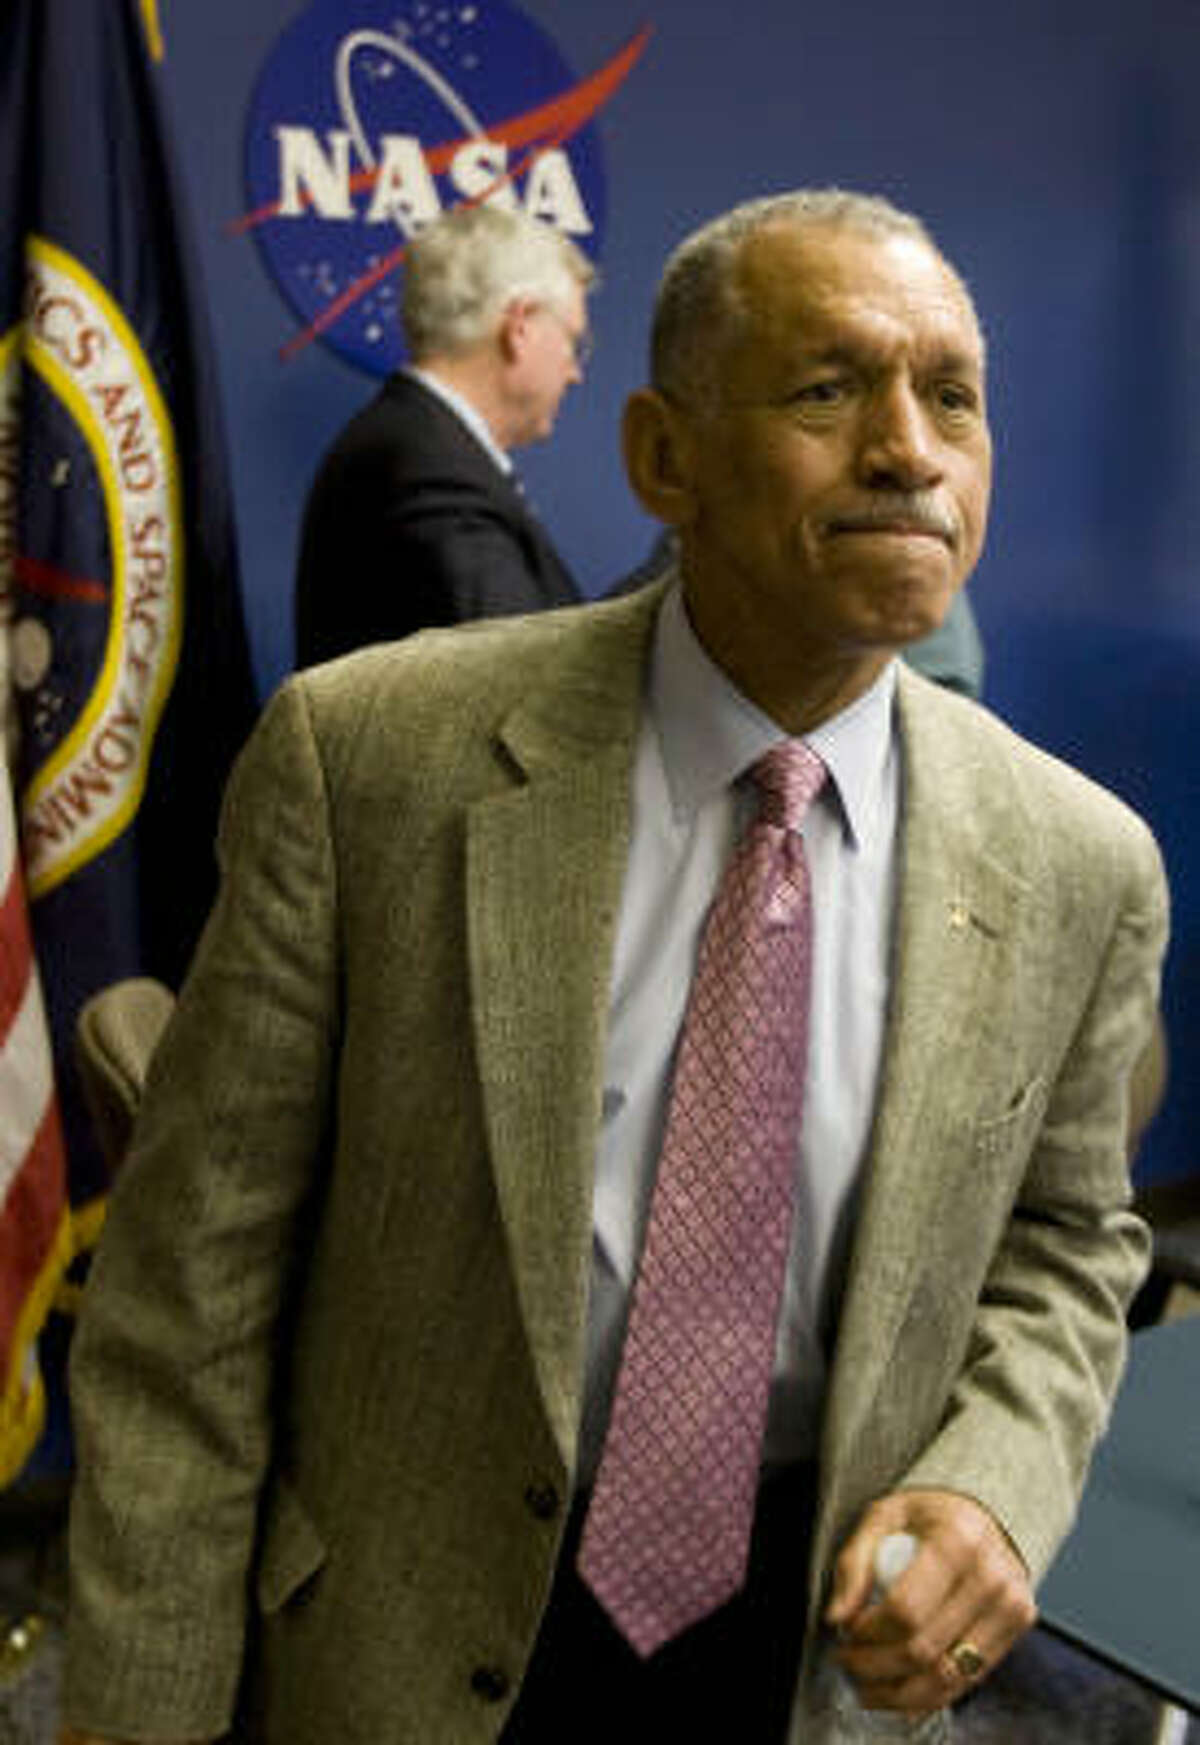 Charles Bolden's visit to China this weekend worries some in Congress.